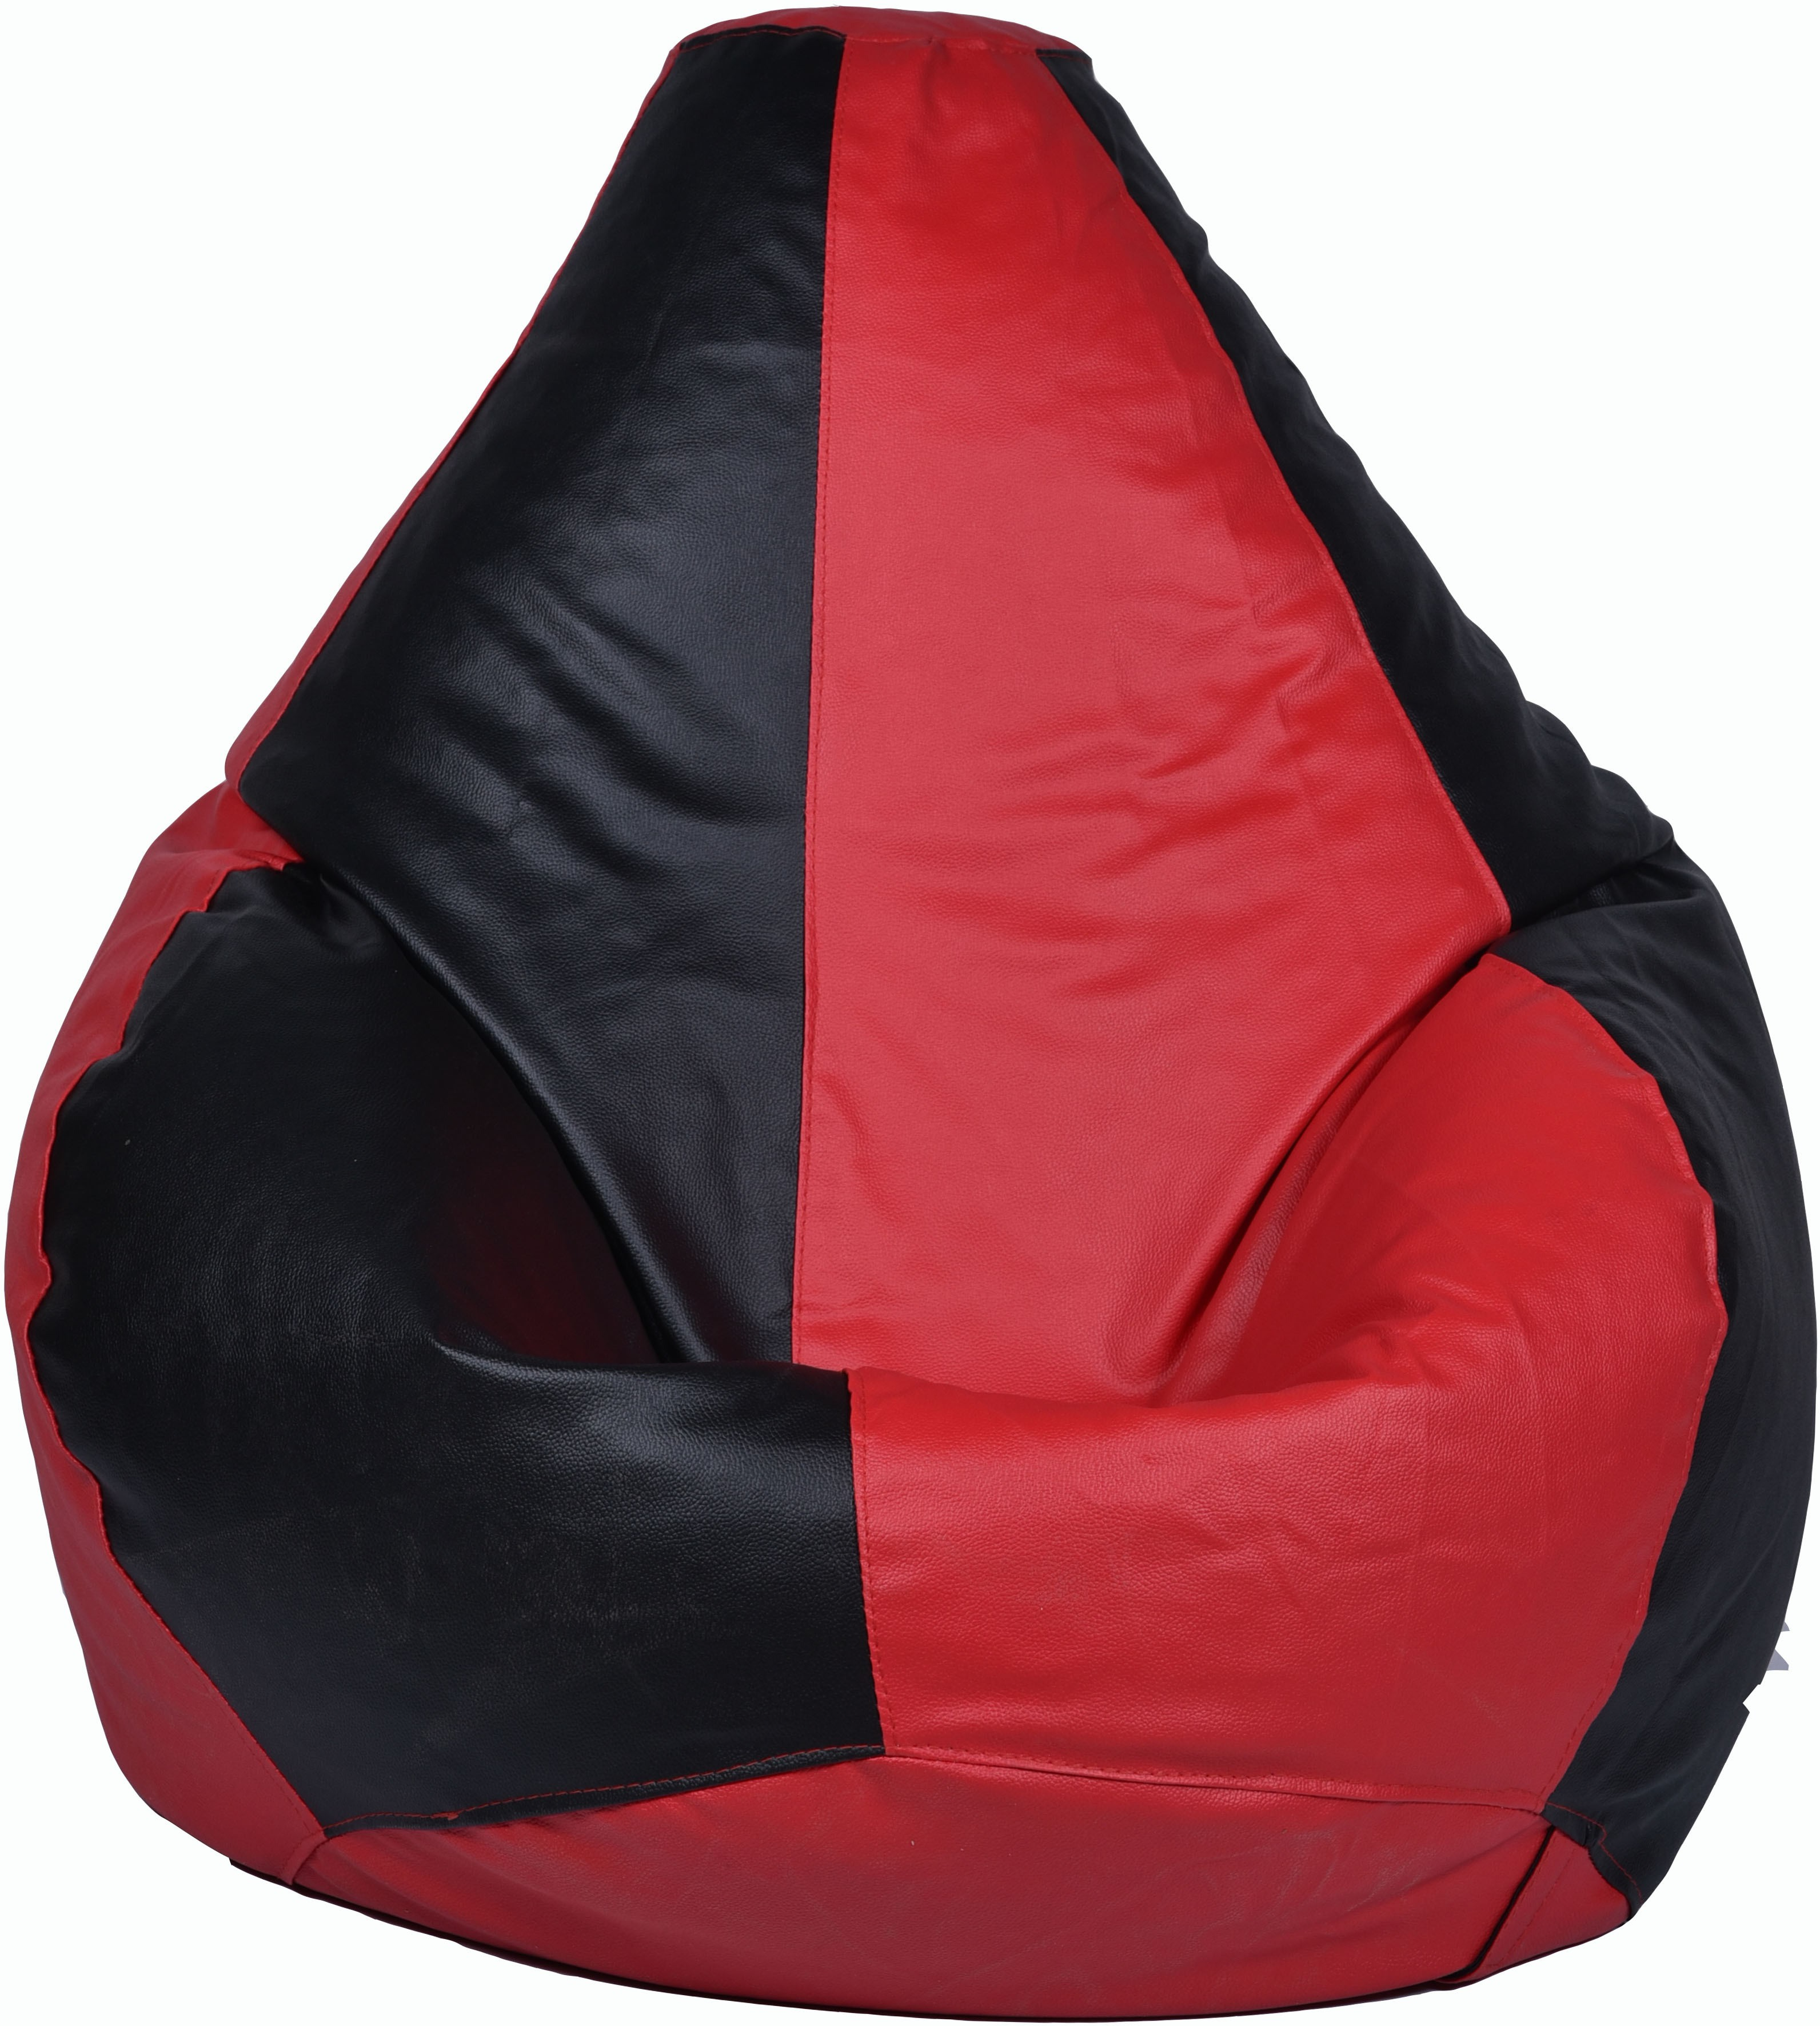 View Mobler XL Bean Bag  With Bean Filling(Multicolor) Furniture (Mobler)